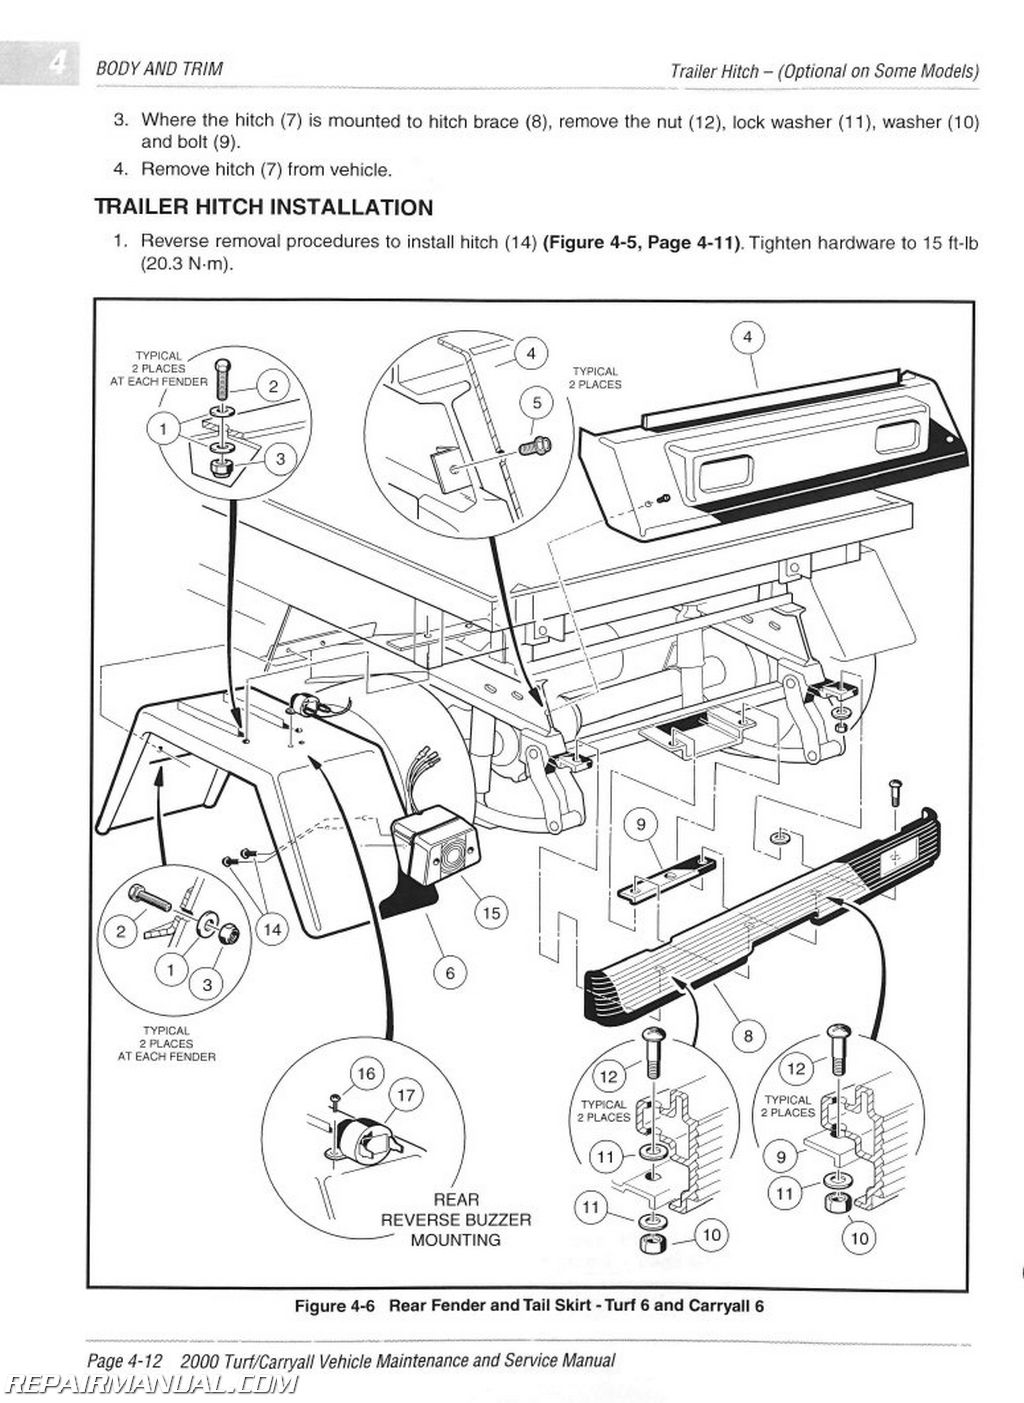 1995 club car carry all 6 wiring diagram wiring schematic Windshield for Club Car Carry All